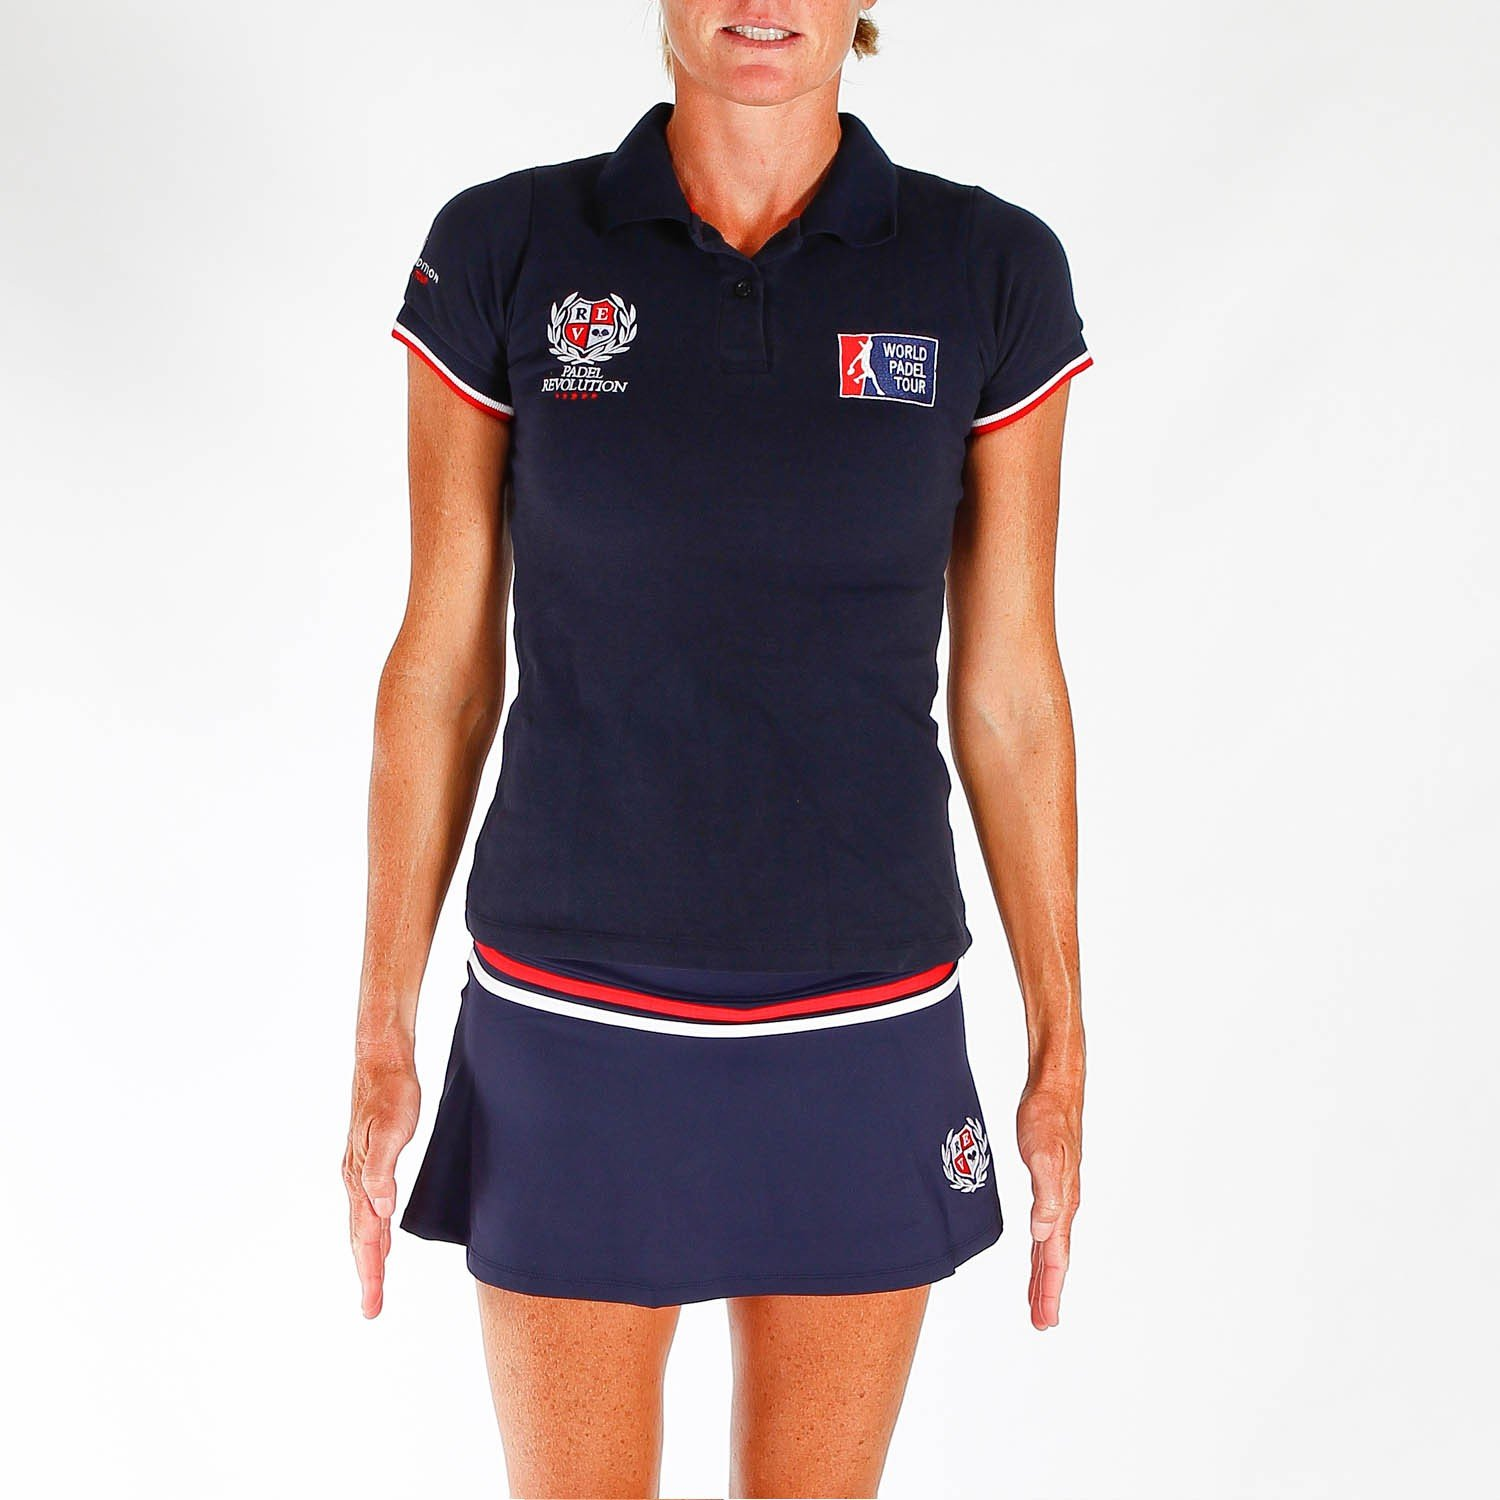 PADEL REVOLUTION - Polo Oficial World Padel Tour Woman M, Color ...